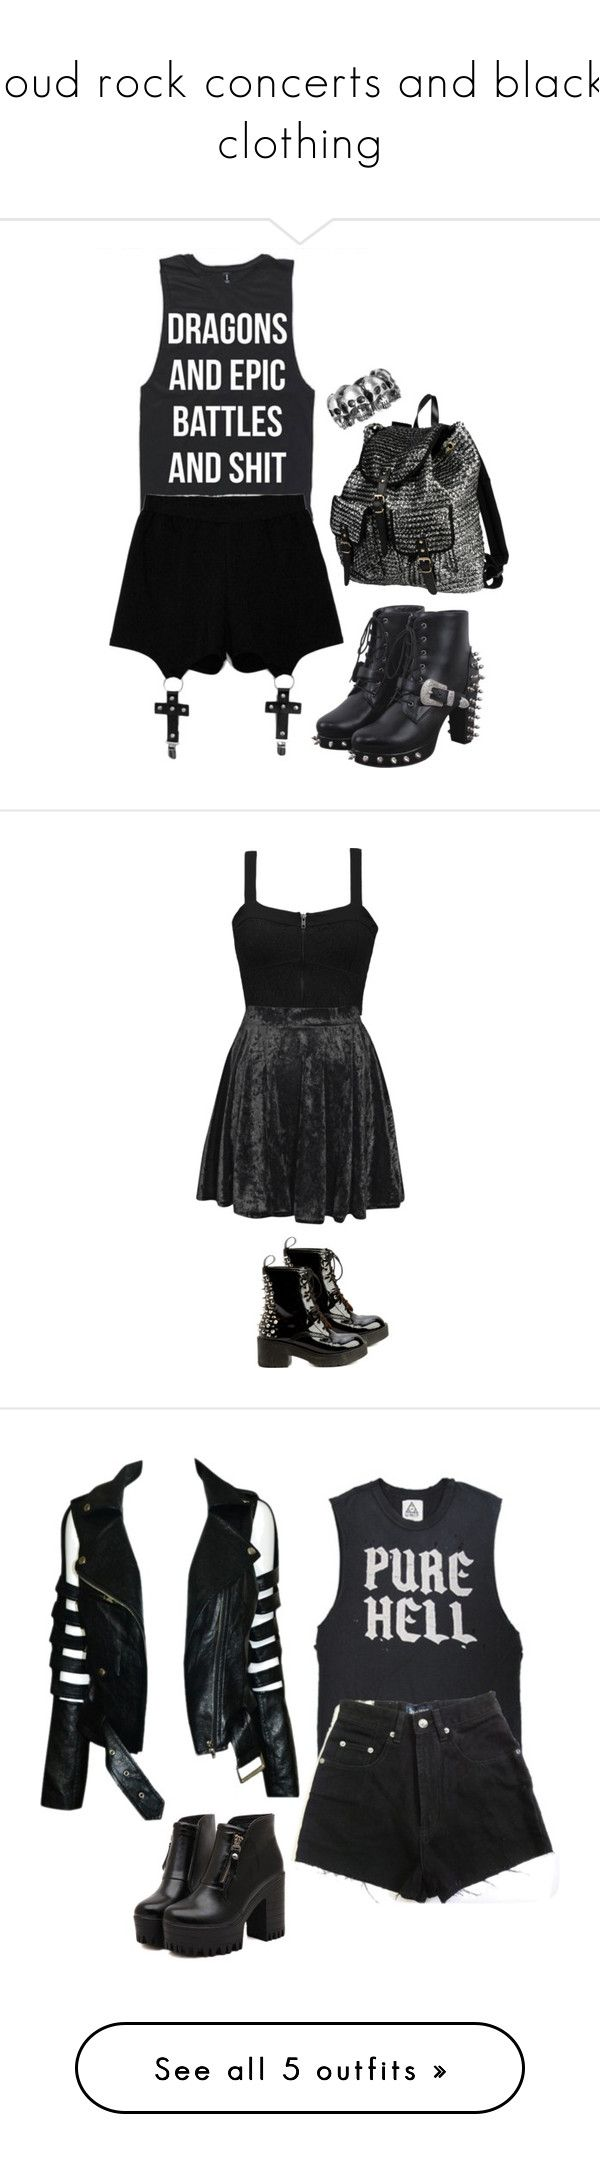 """""""loud rock concerts and black clothing"""" by patpotato ❤ liked on Polyvore featuring Chicnova Fashion, 2 Di Picche Recycled, ASOS, Element, Boohoo, Jeffrey Campbell, Dr. Martens, High Heels Suicide, VIPARO and Charlotte Russe"""